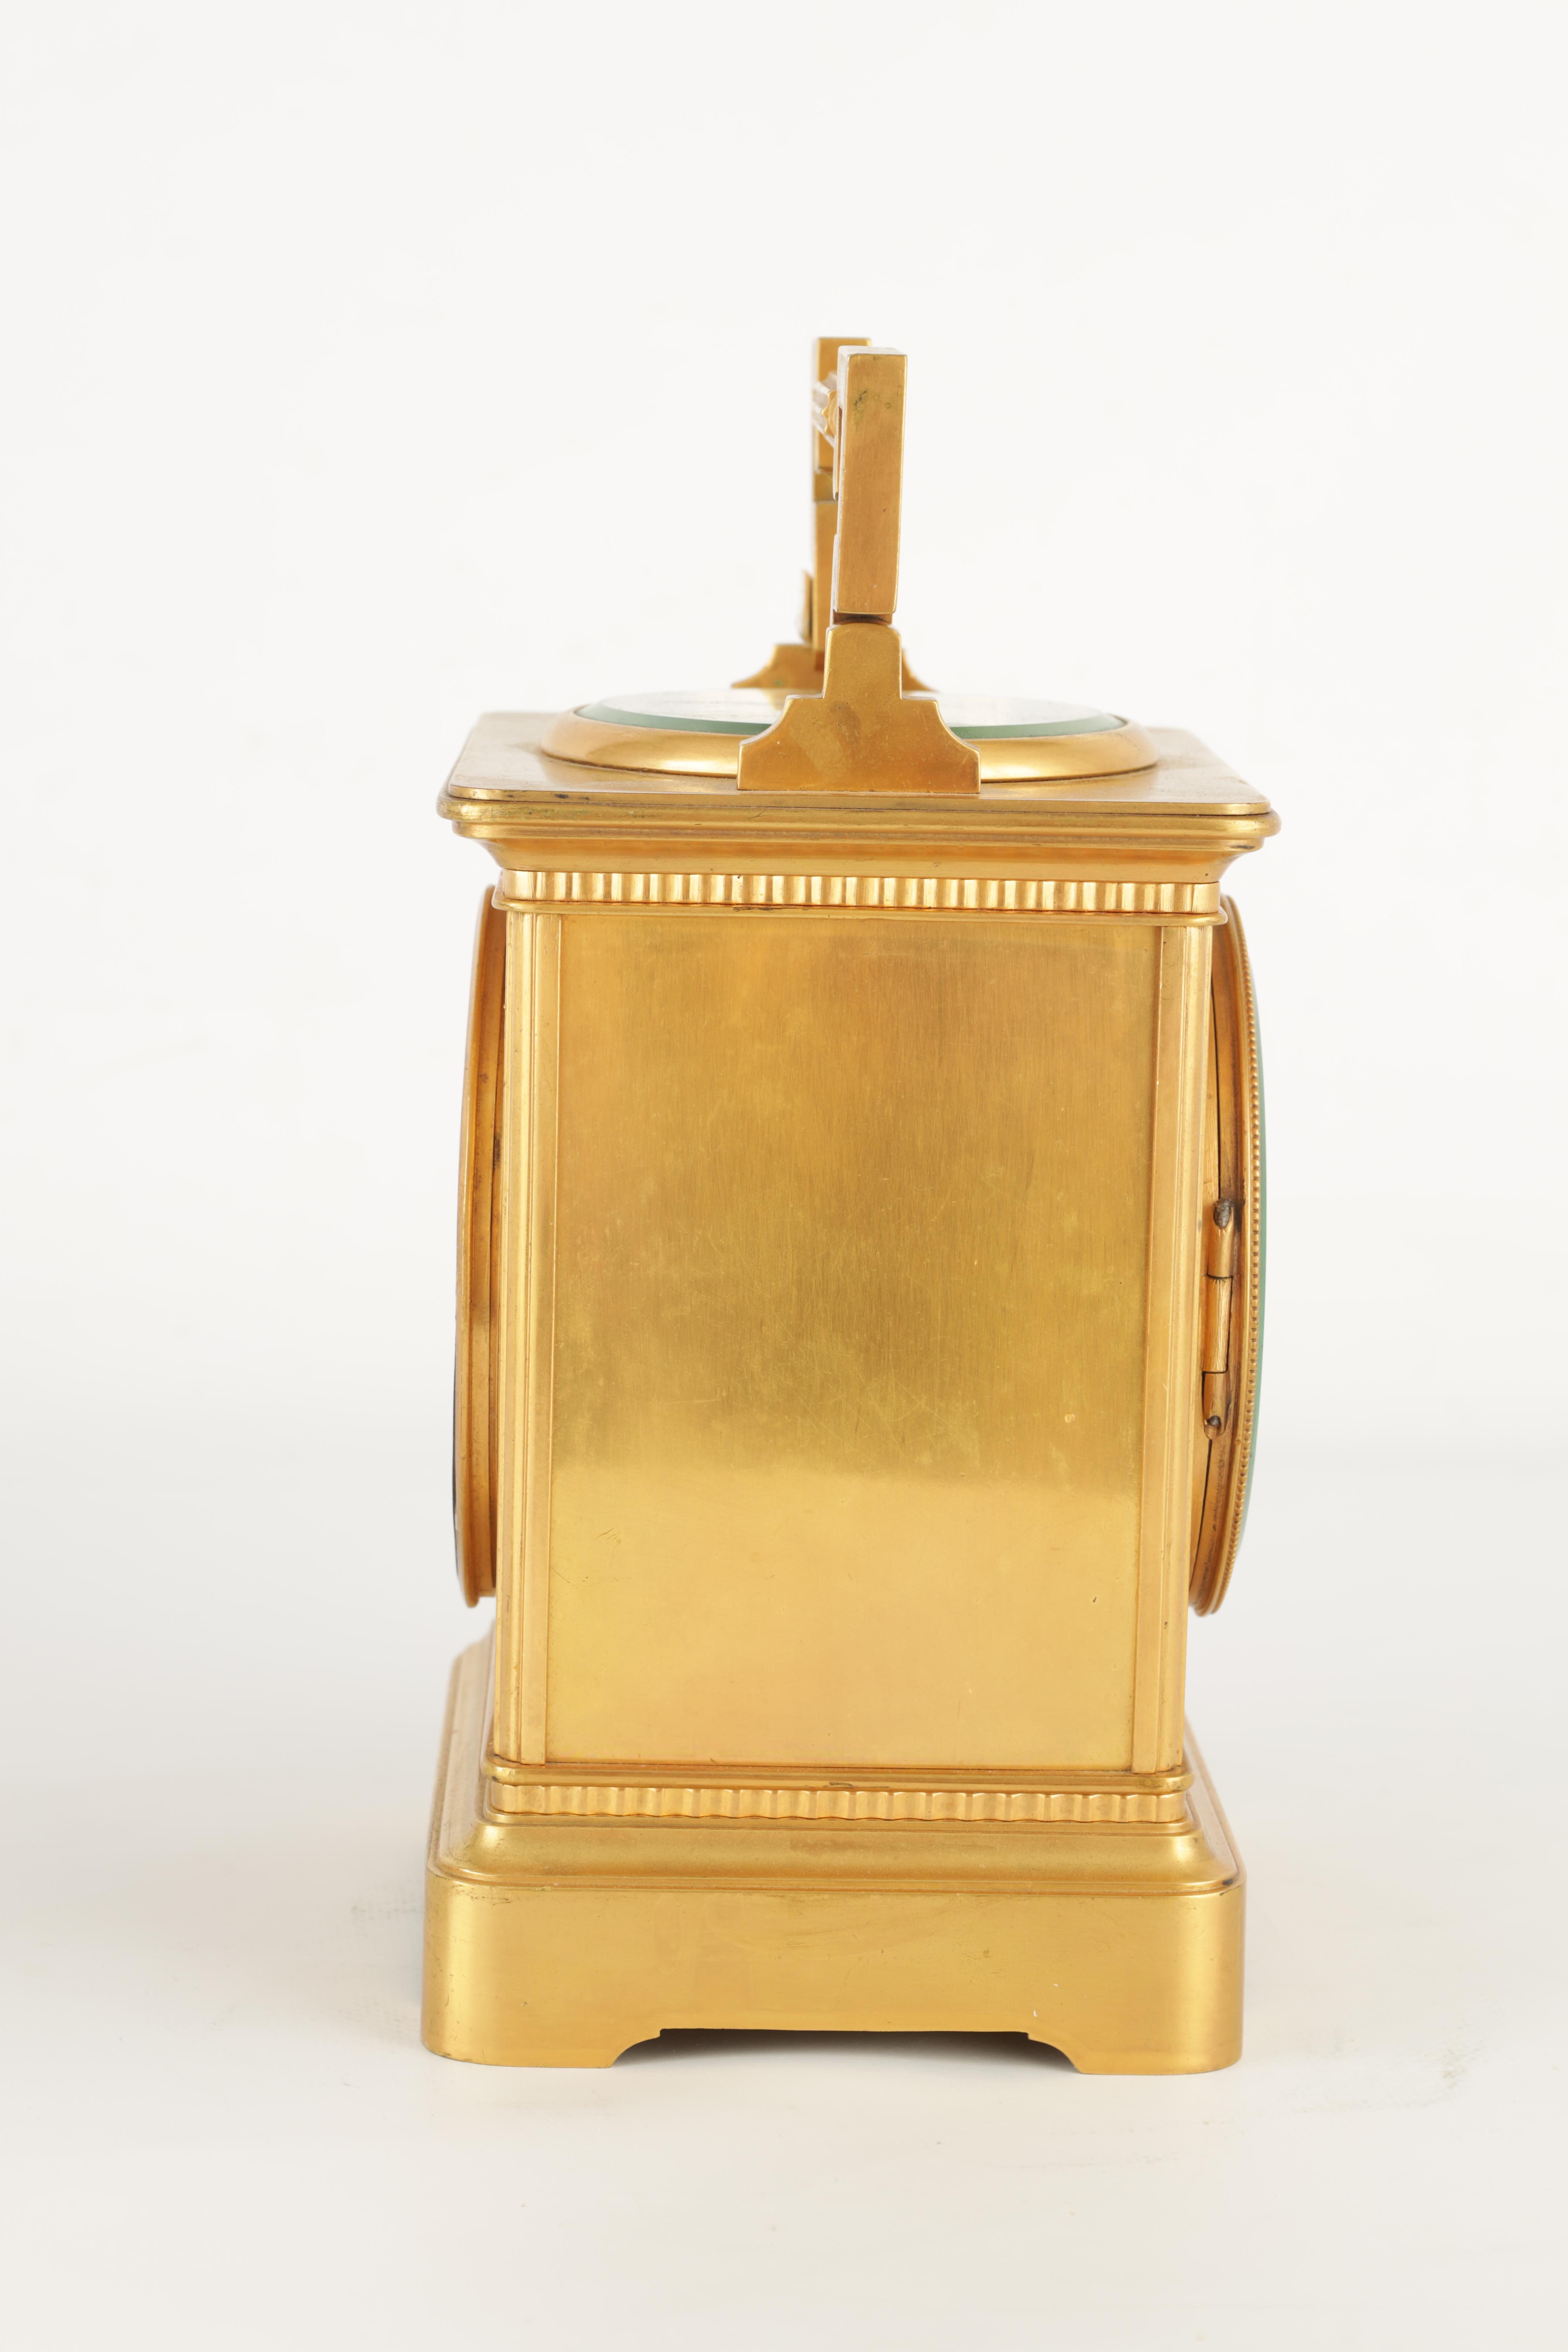 A LARGE FRENCH GILT BRASS CARRIAGE CLOCK WITH BAROMETER the moulded case with hinged handle, the top - Image 6 of 8